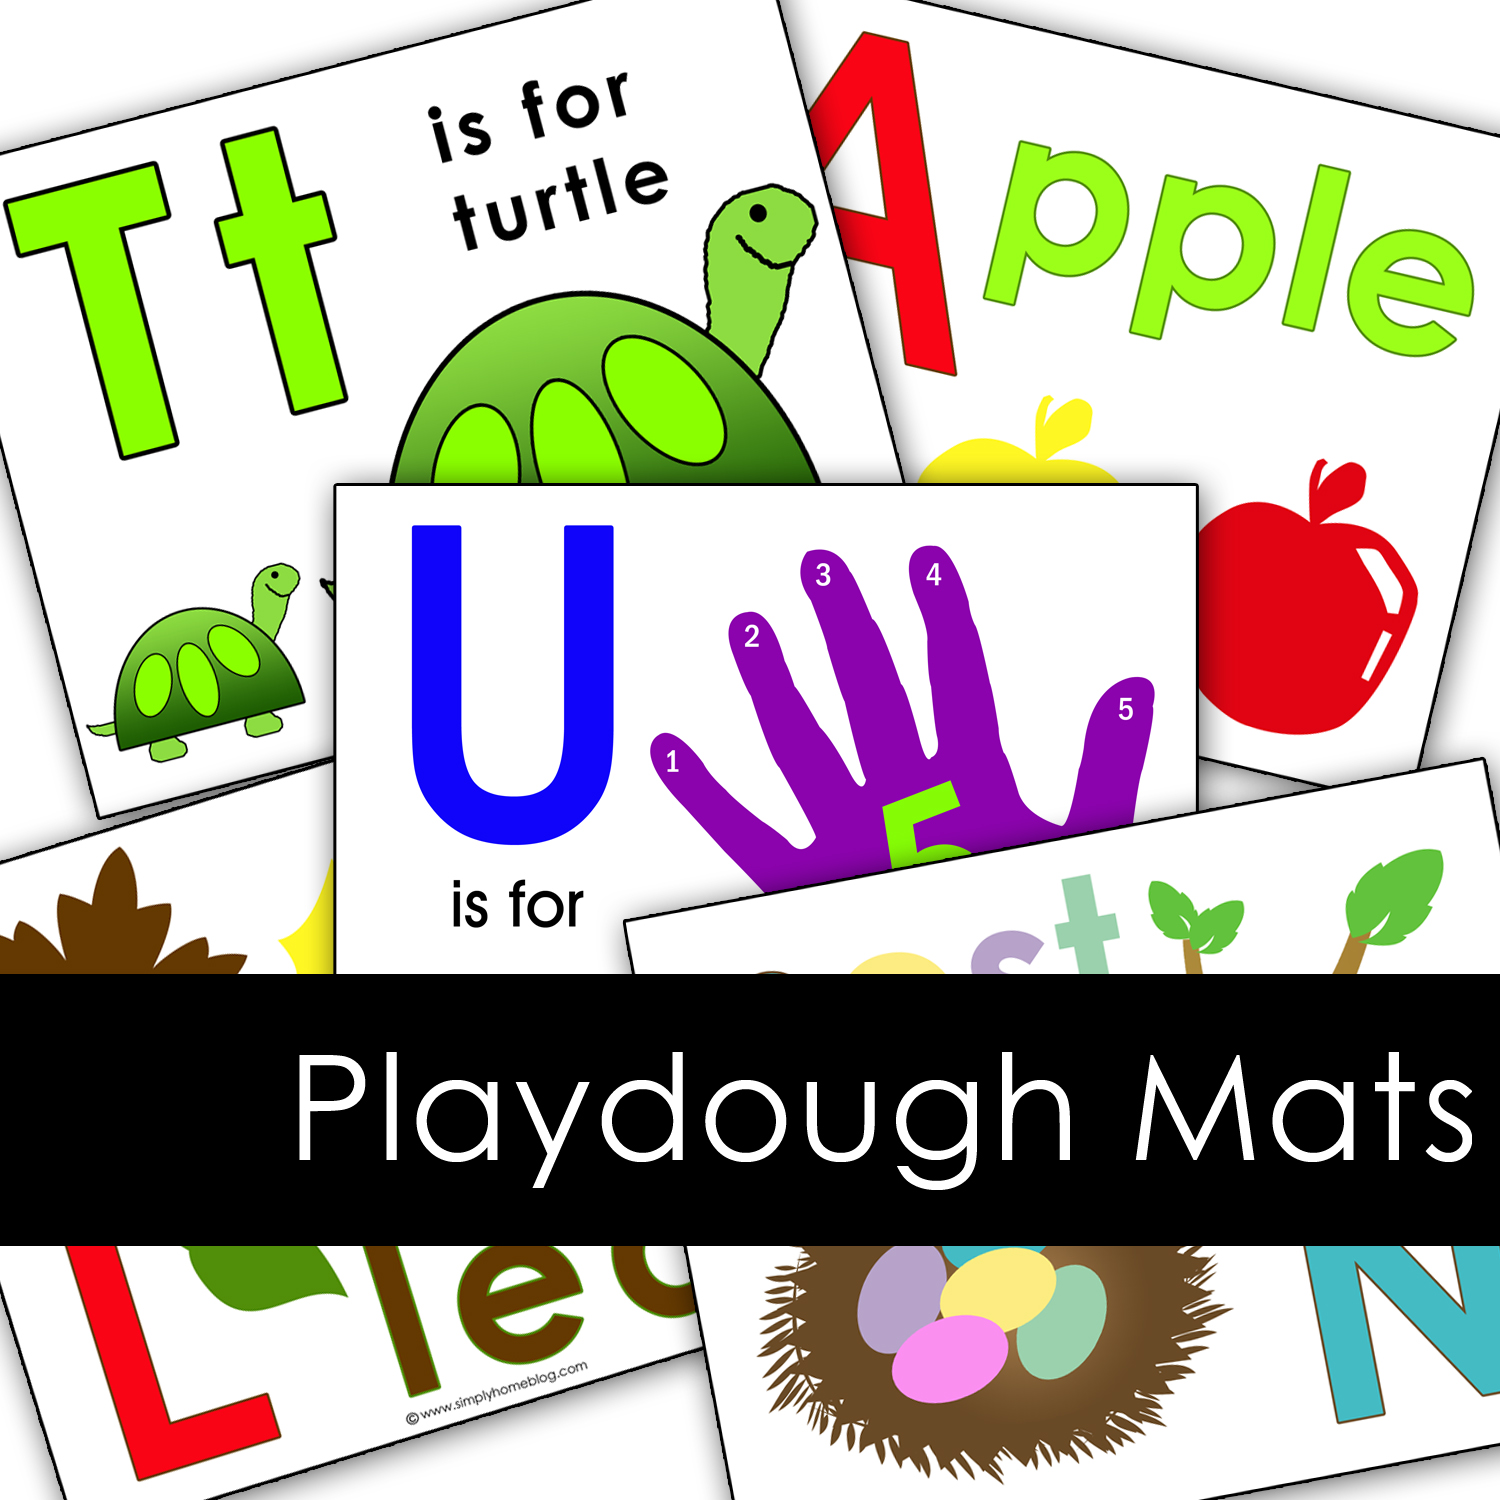 playdough mat blog